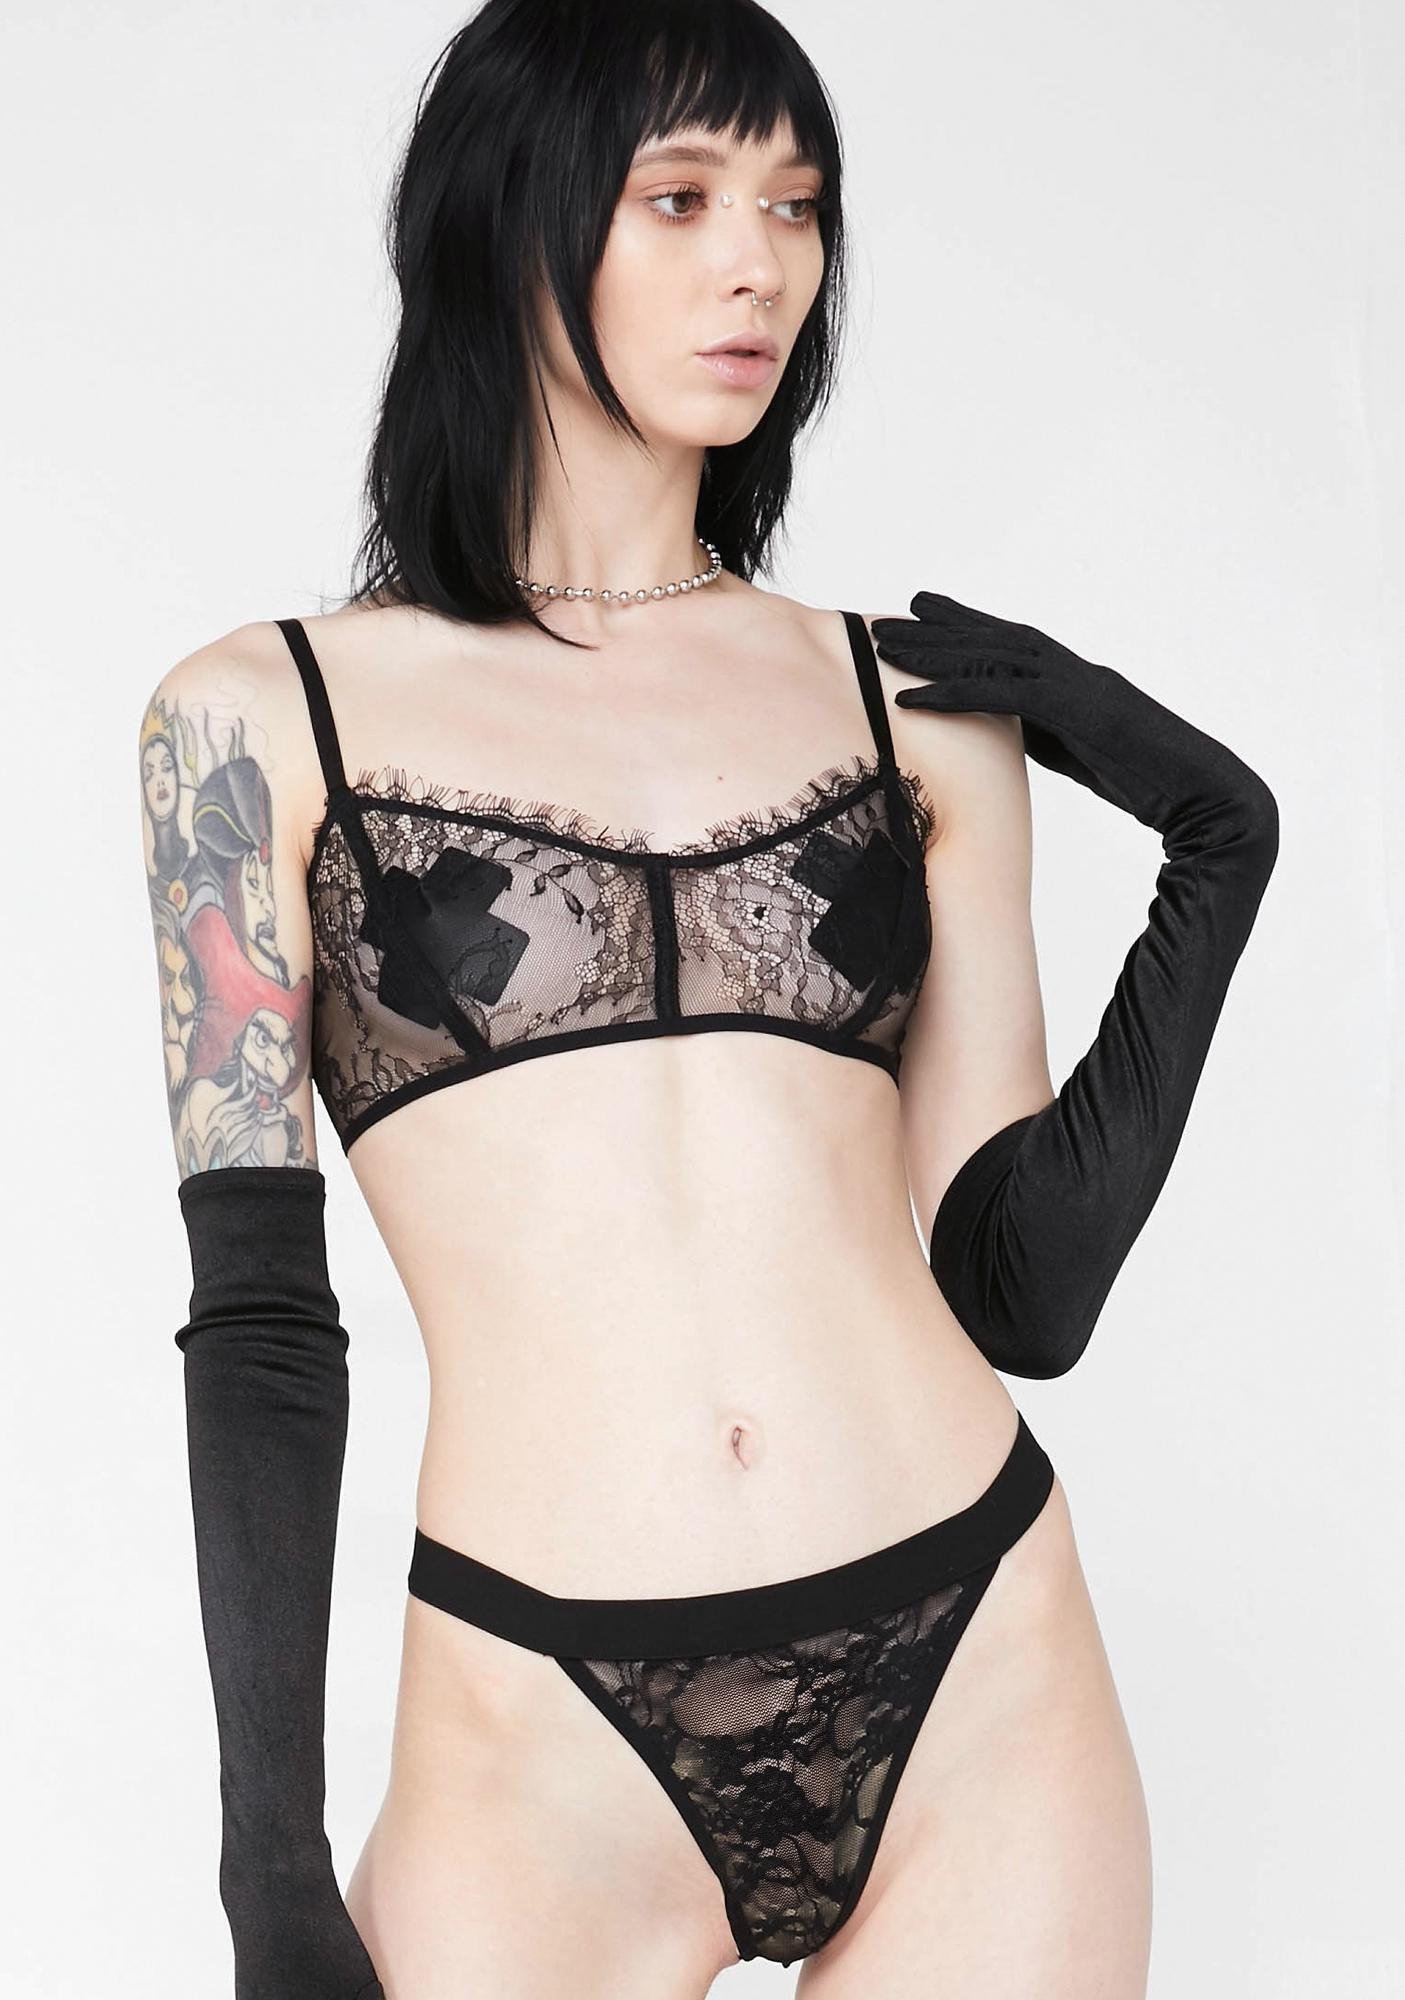 ee47e0c71b Lace Bra And Thong Lingerie Set